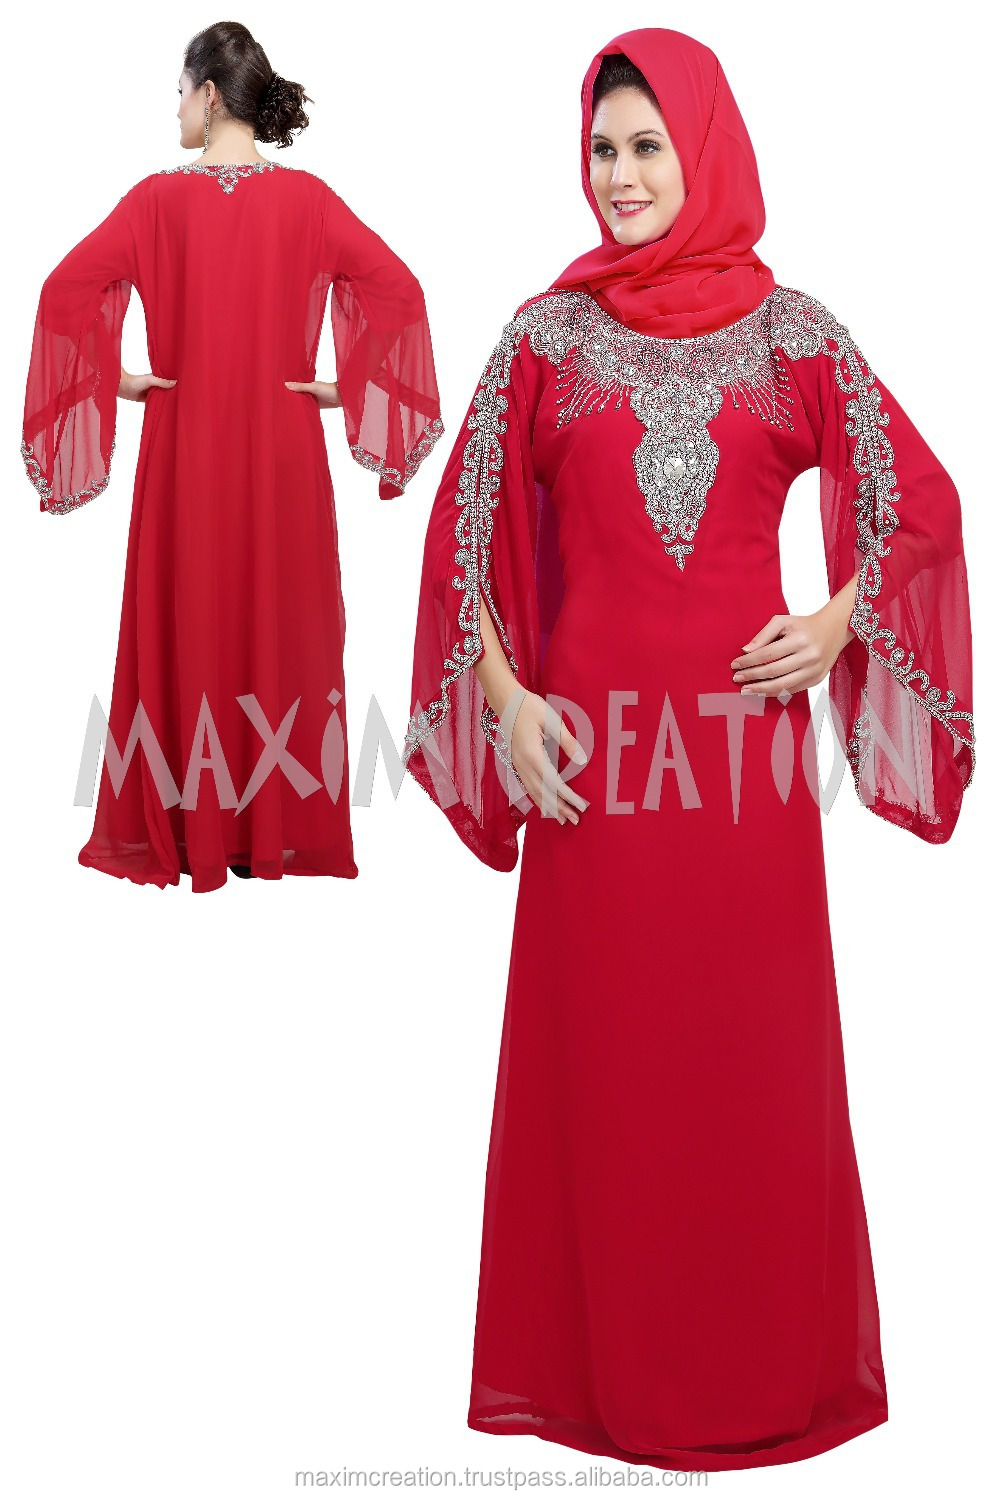 new georgette dubai kaftan dress jilbab jalabiya party